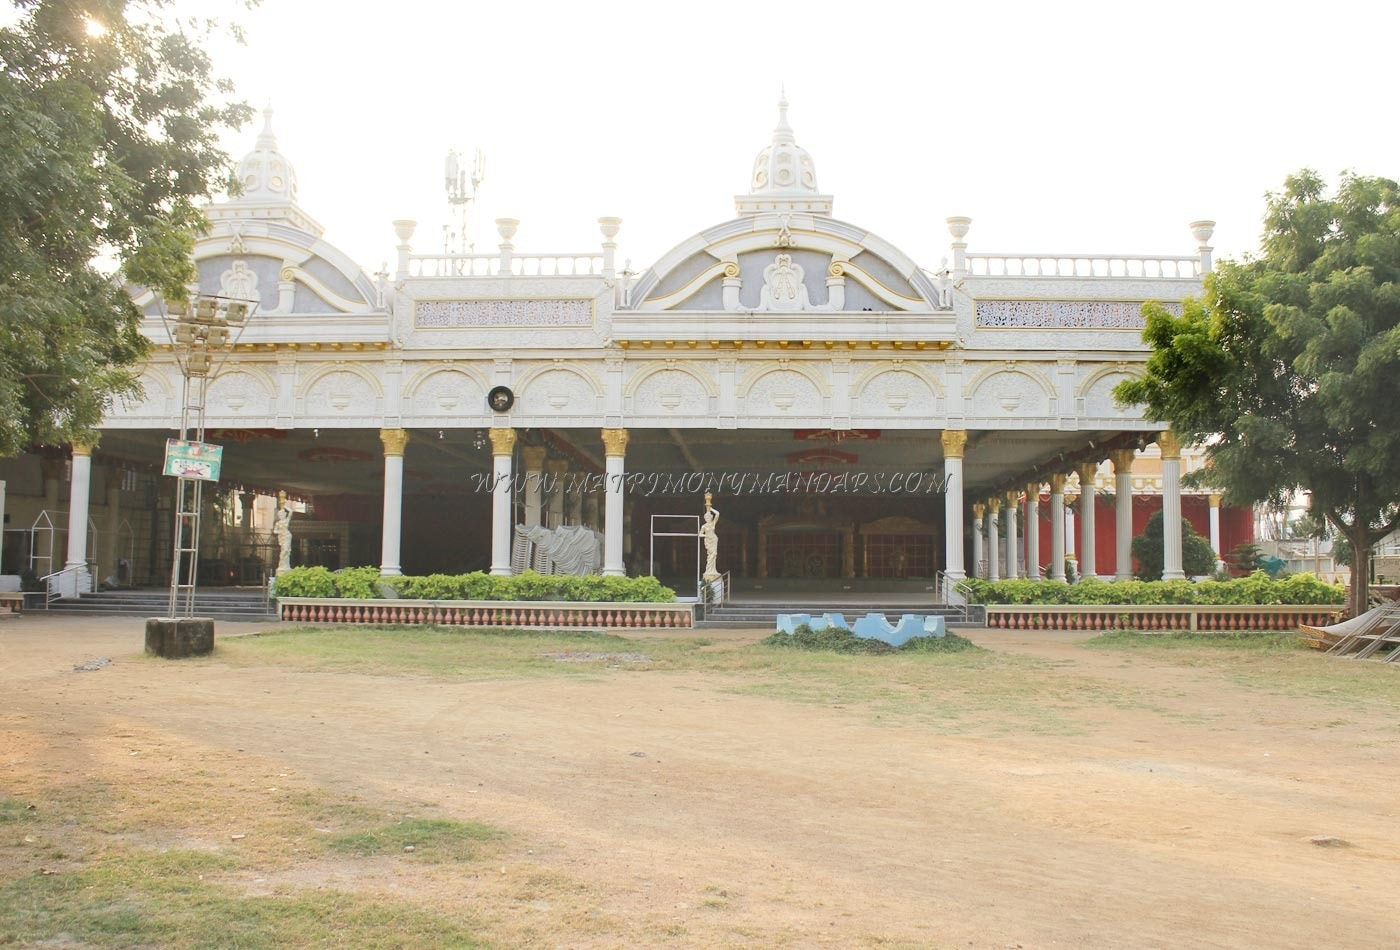 Find the availability of the Tirumala Gardens in Malkajgiri, Hyderabad and avail special offers